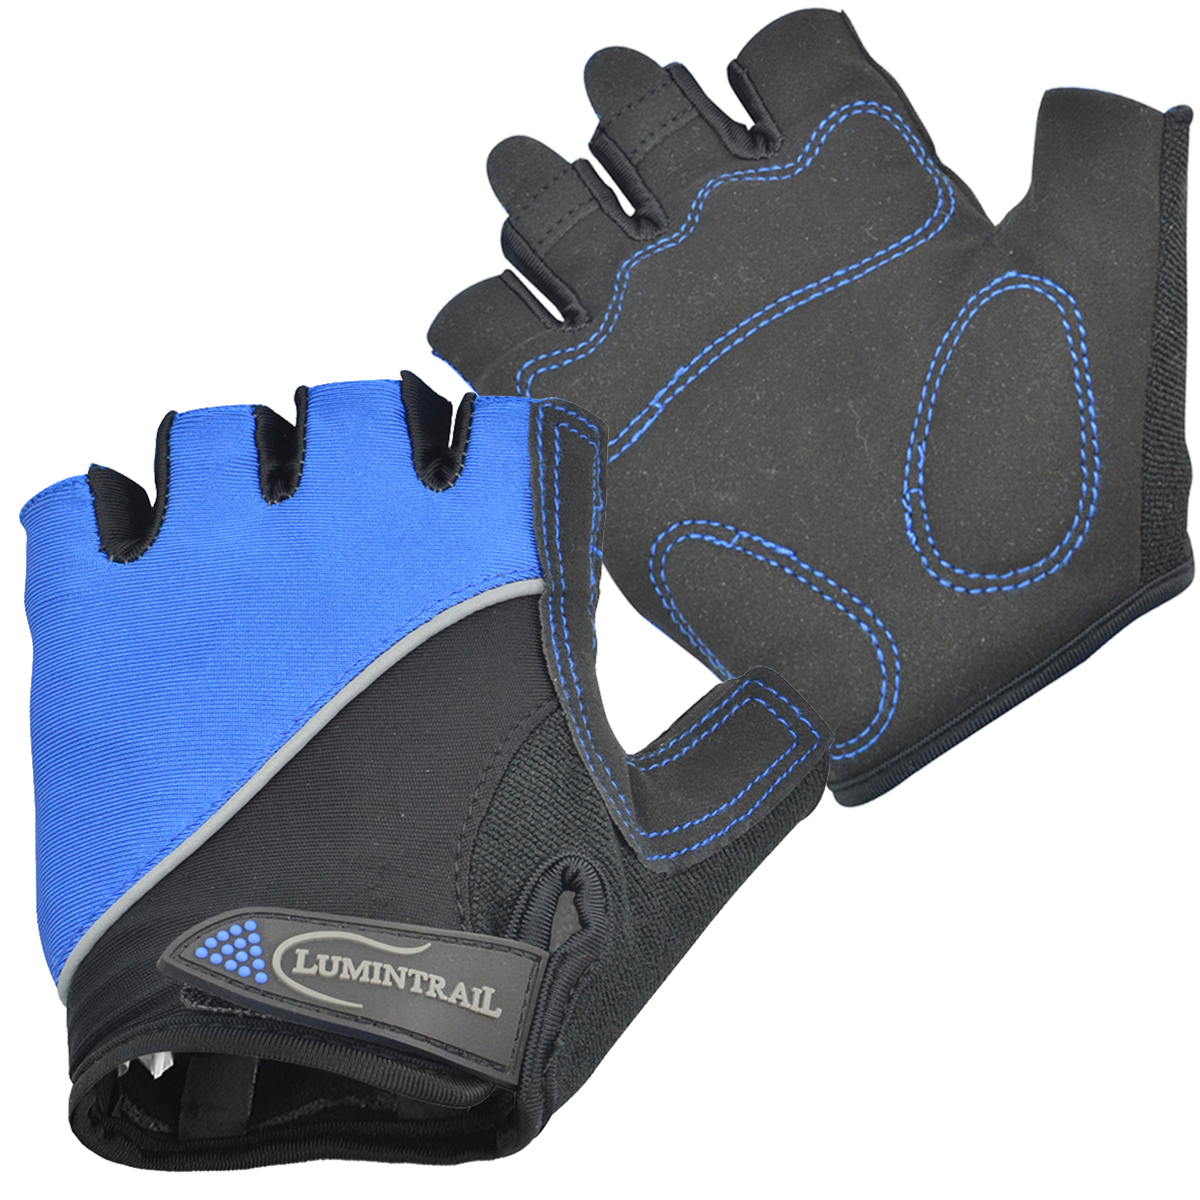 Lumintrail Shock Absorbing Half-Finger Riding Cycling Gloves Breathable Road Racing Bicycle Mens Womens